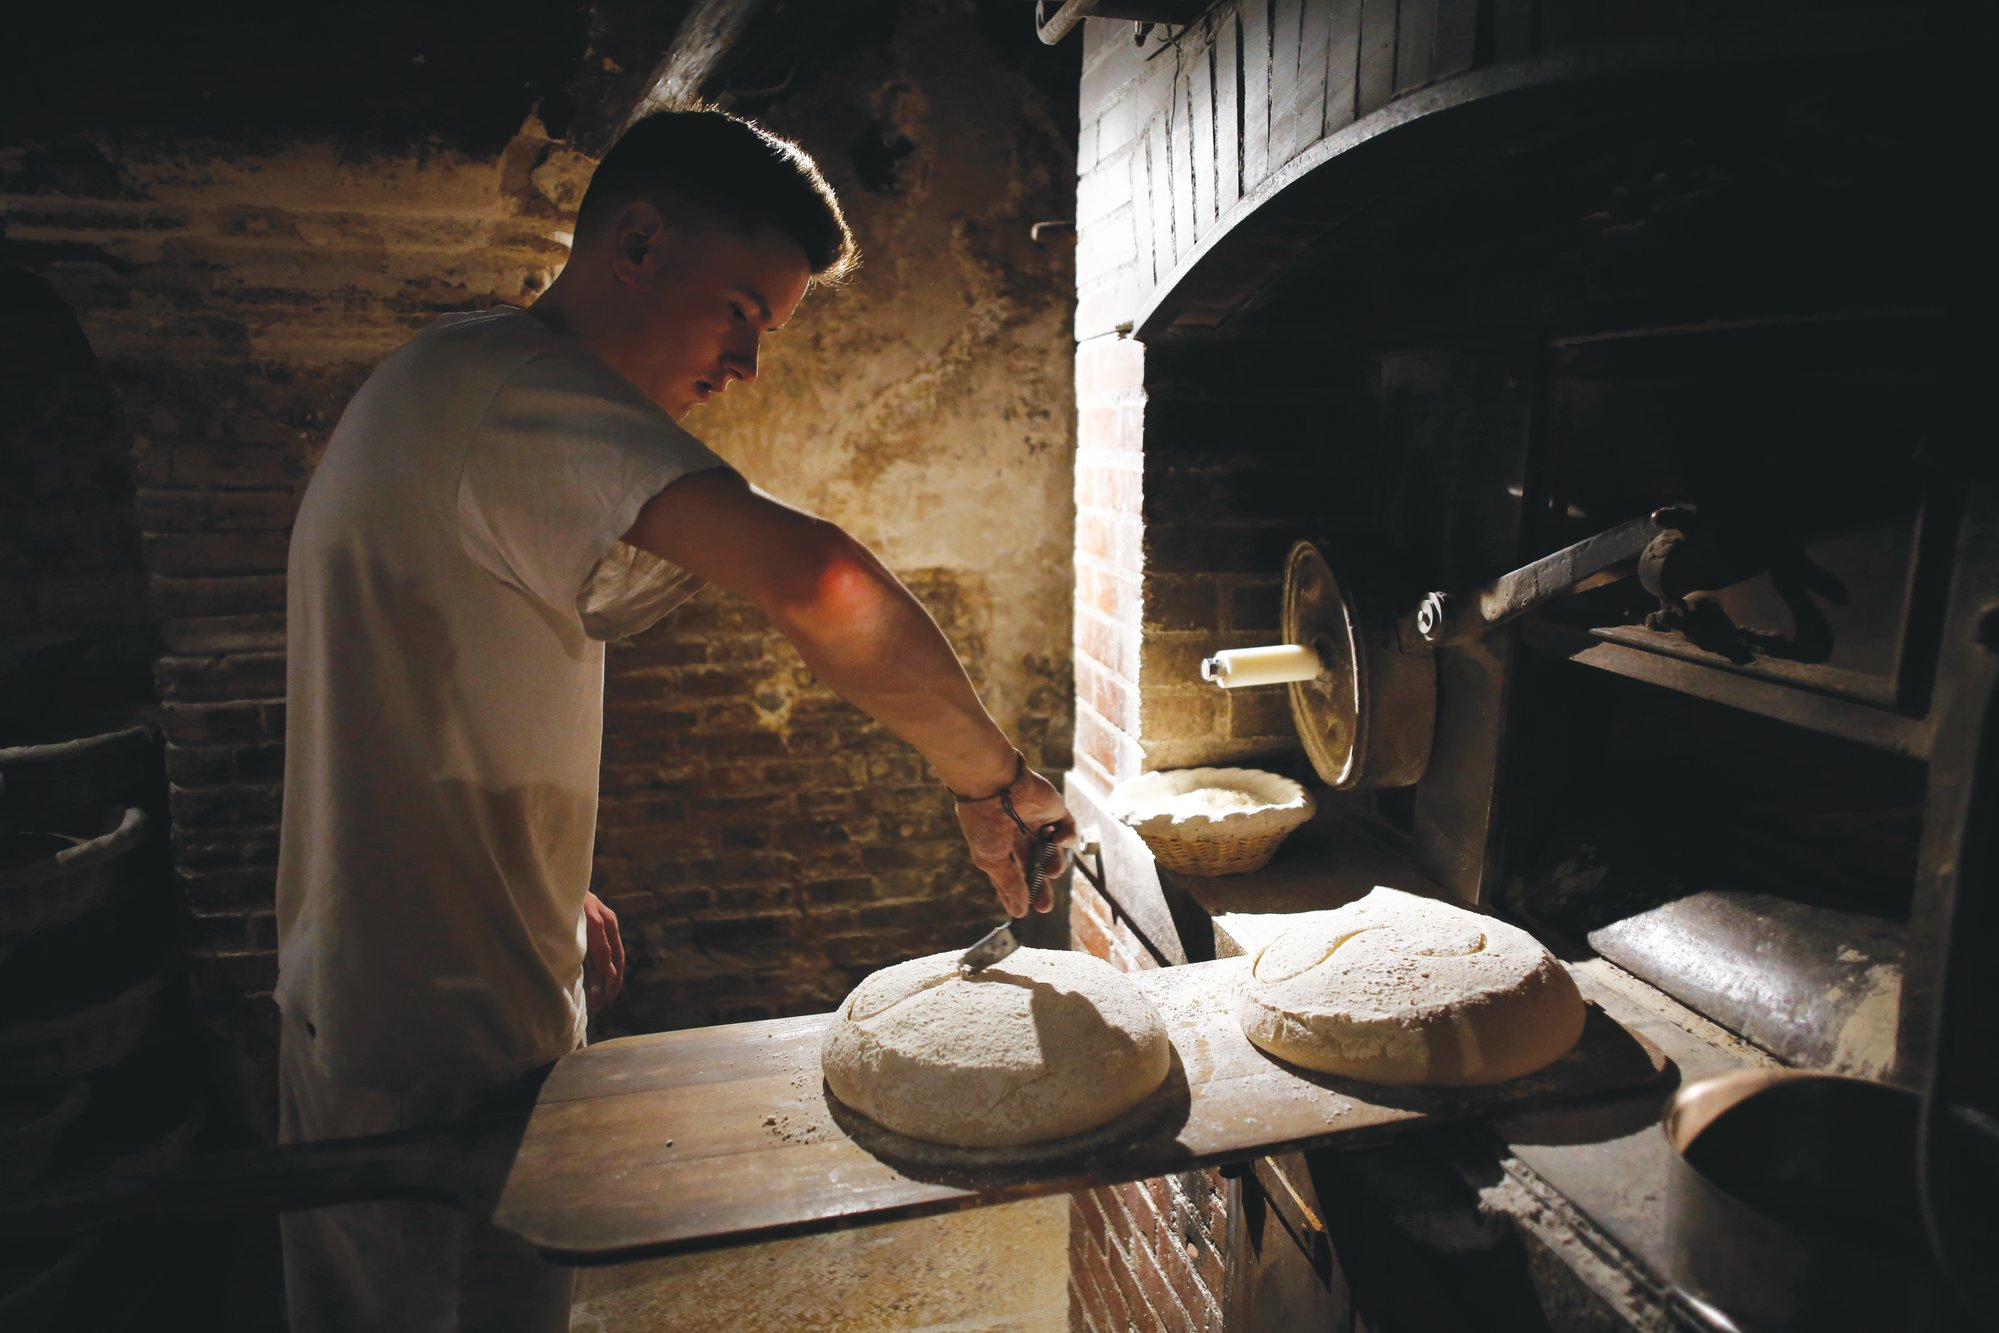 A worker prepares round loaves for baking in the bread oven of the Poil ne bakery in Paris.